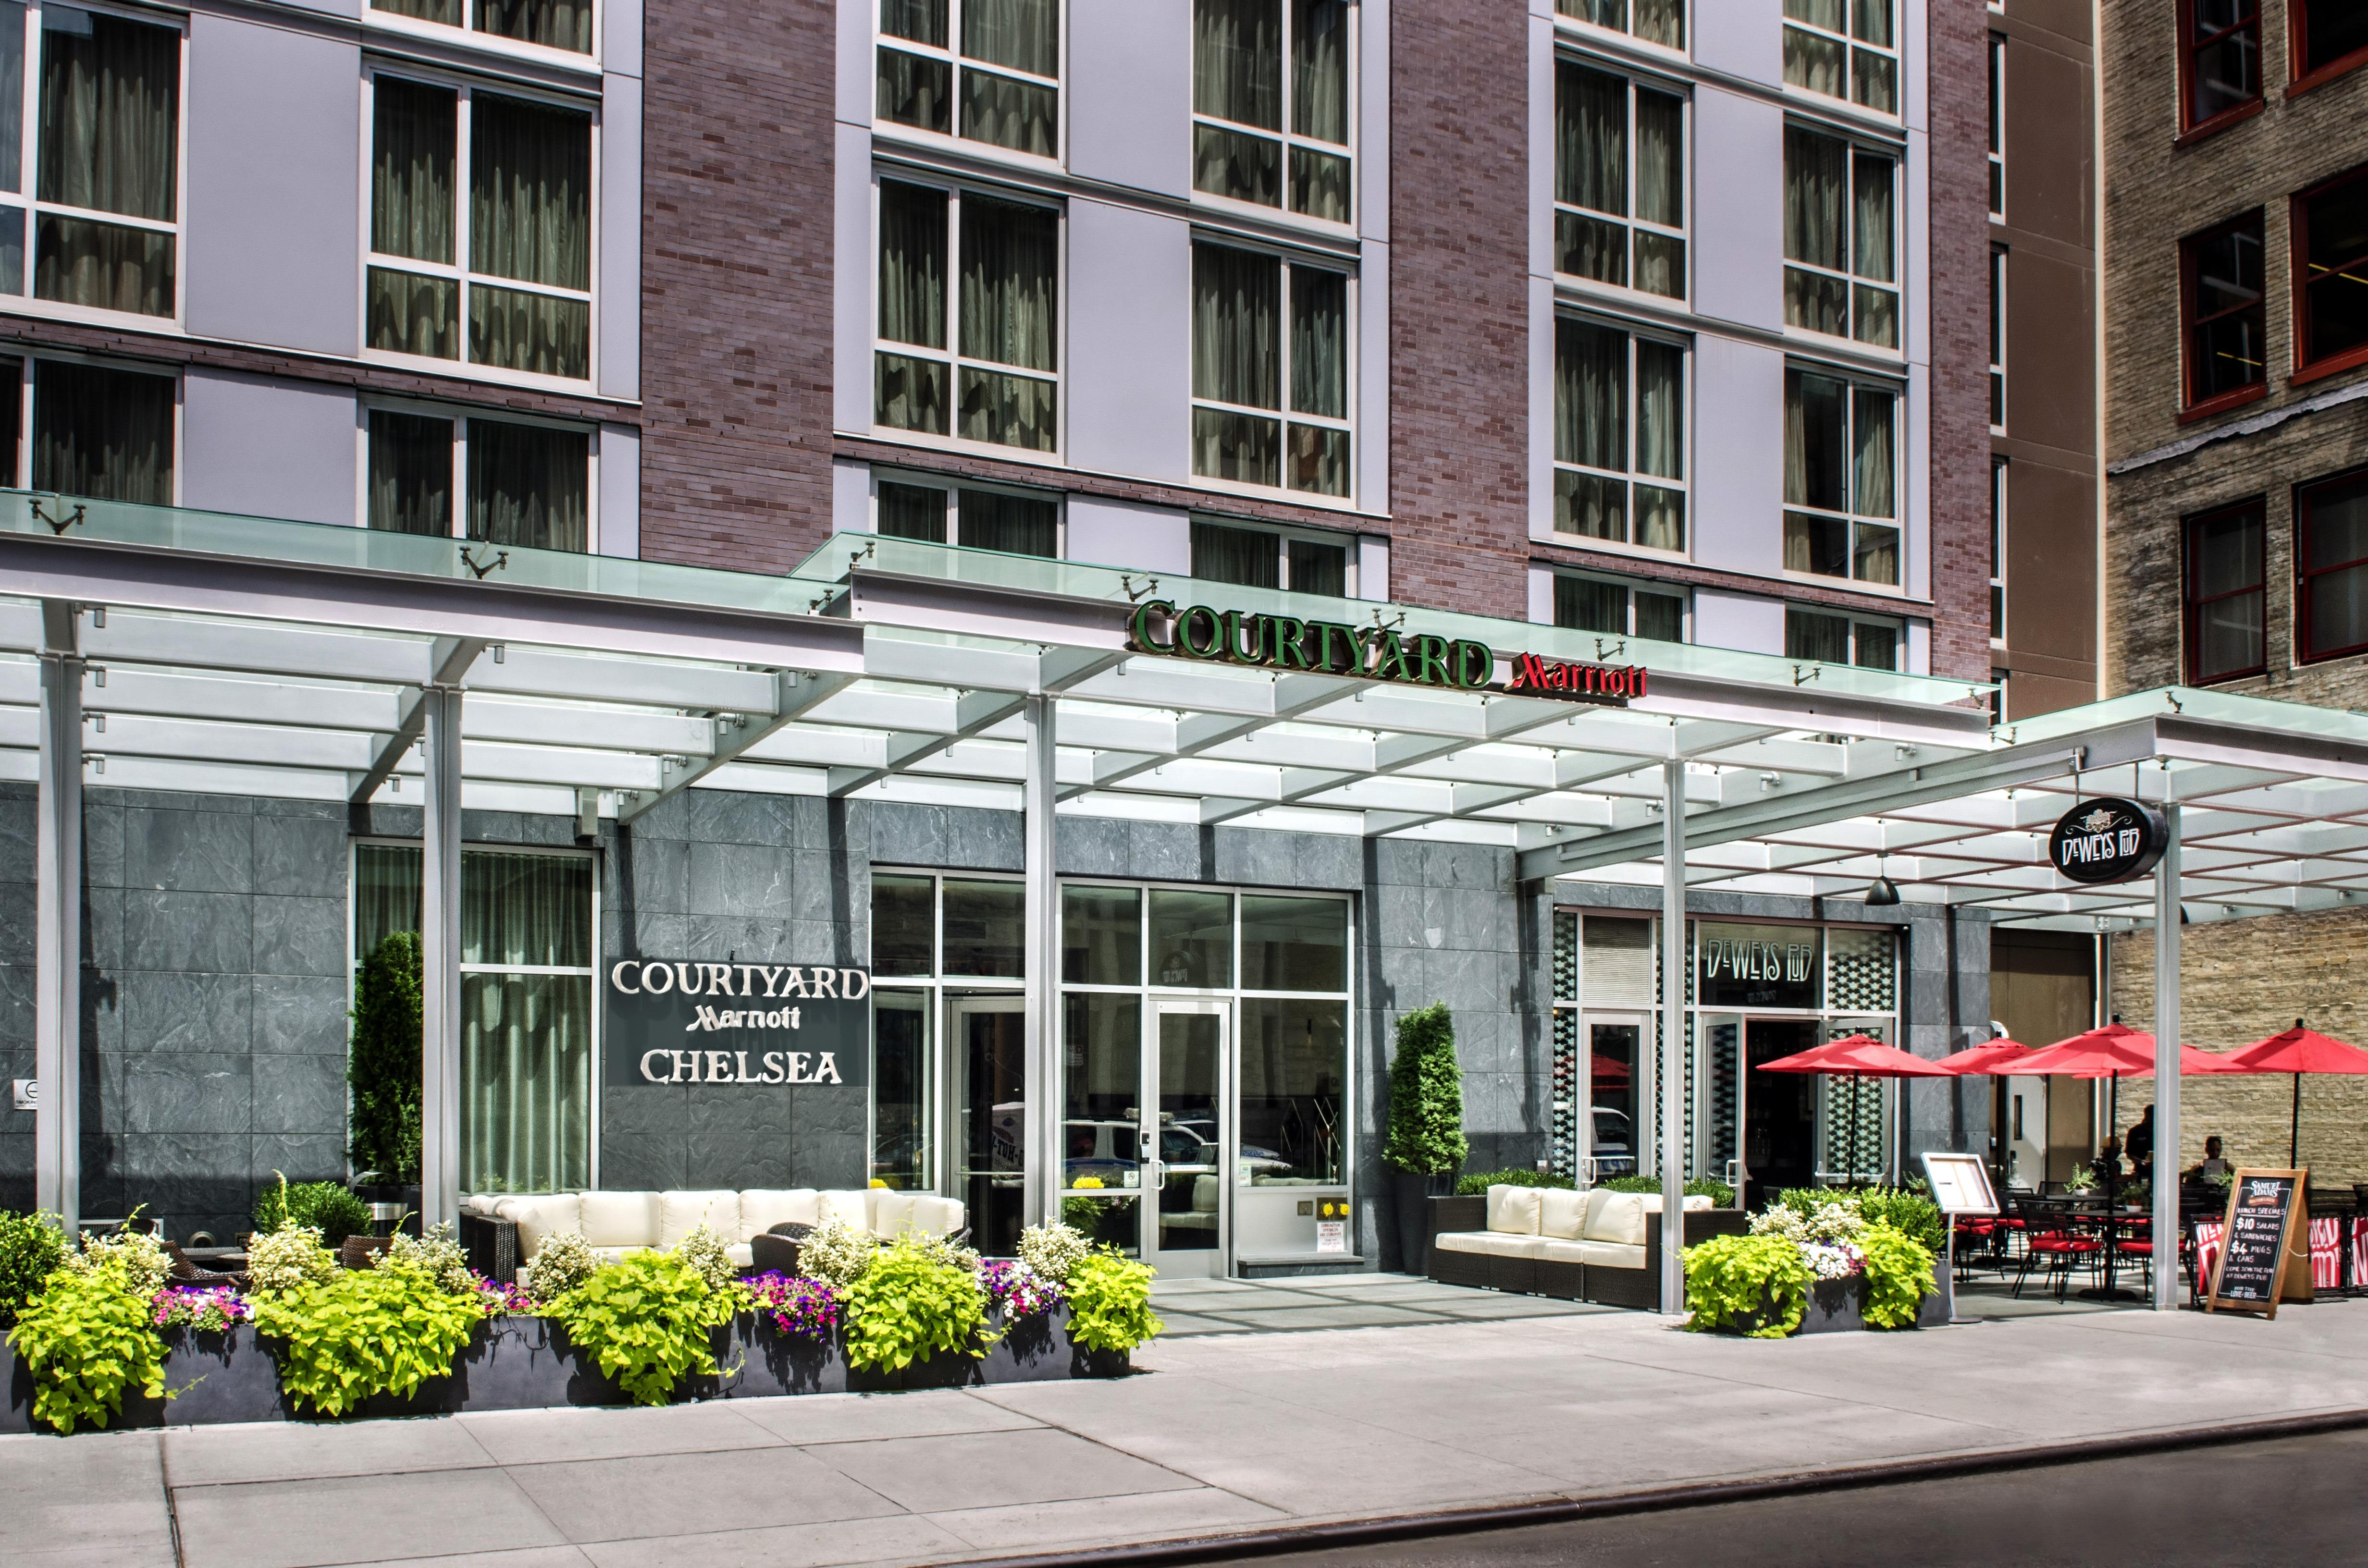 Courtyard by marriott new york manhattan chelsea new york Hilton garden inn new york manhattan chelsea